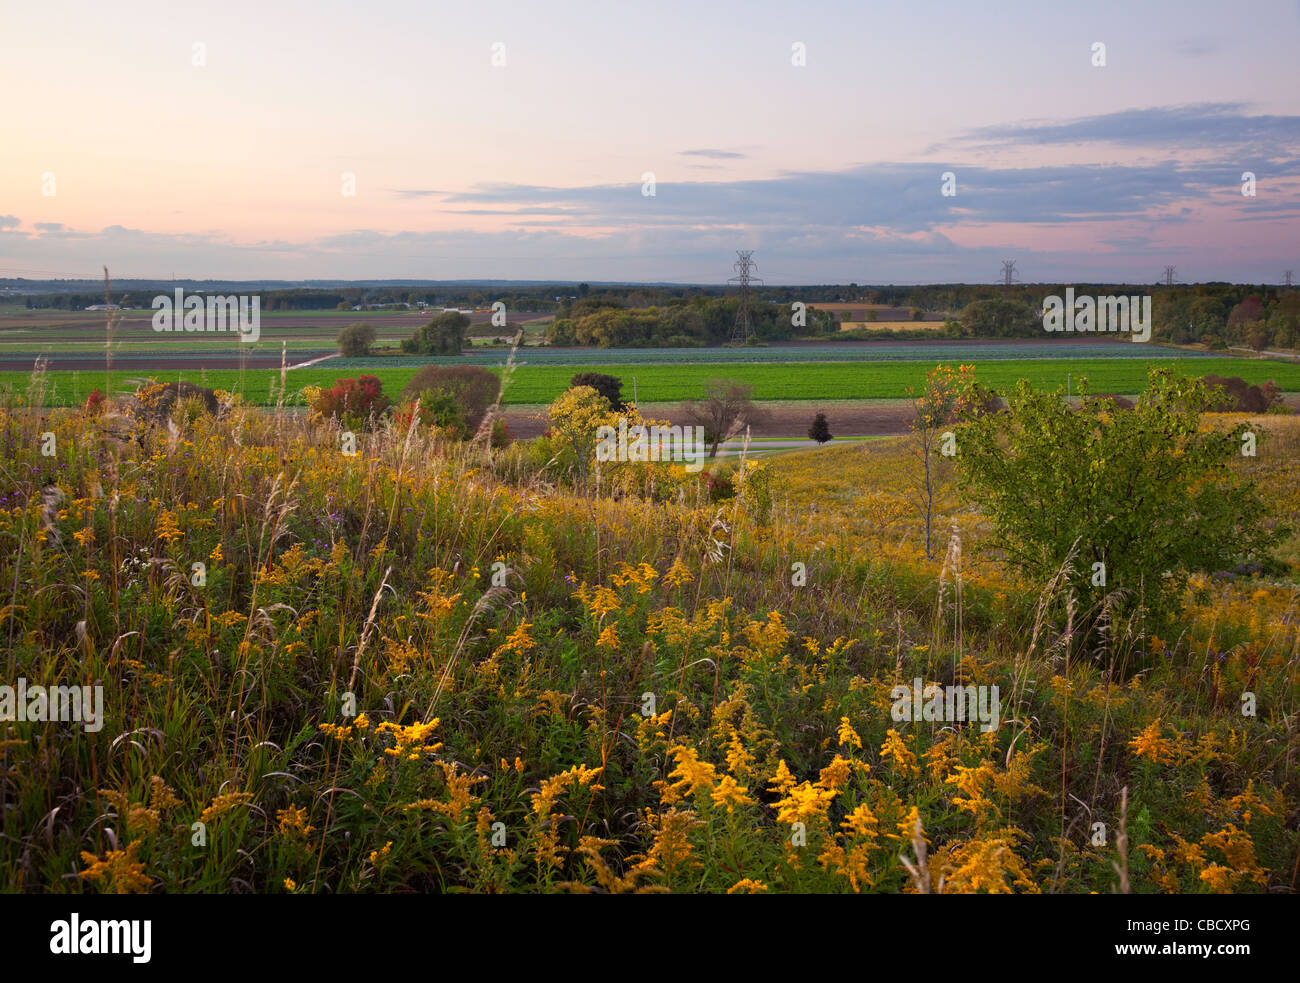 Sunset over a section of the Holland Marsh. Bradford West Gwillimbury, Ontario, Canada. - Stock Image